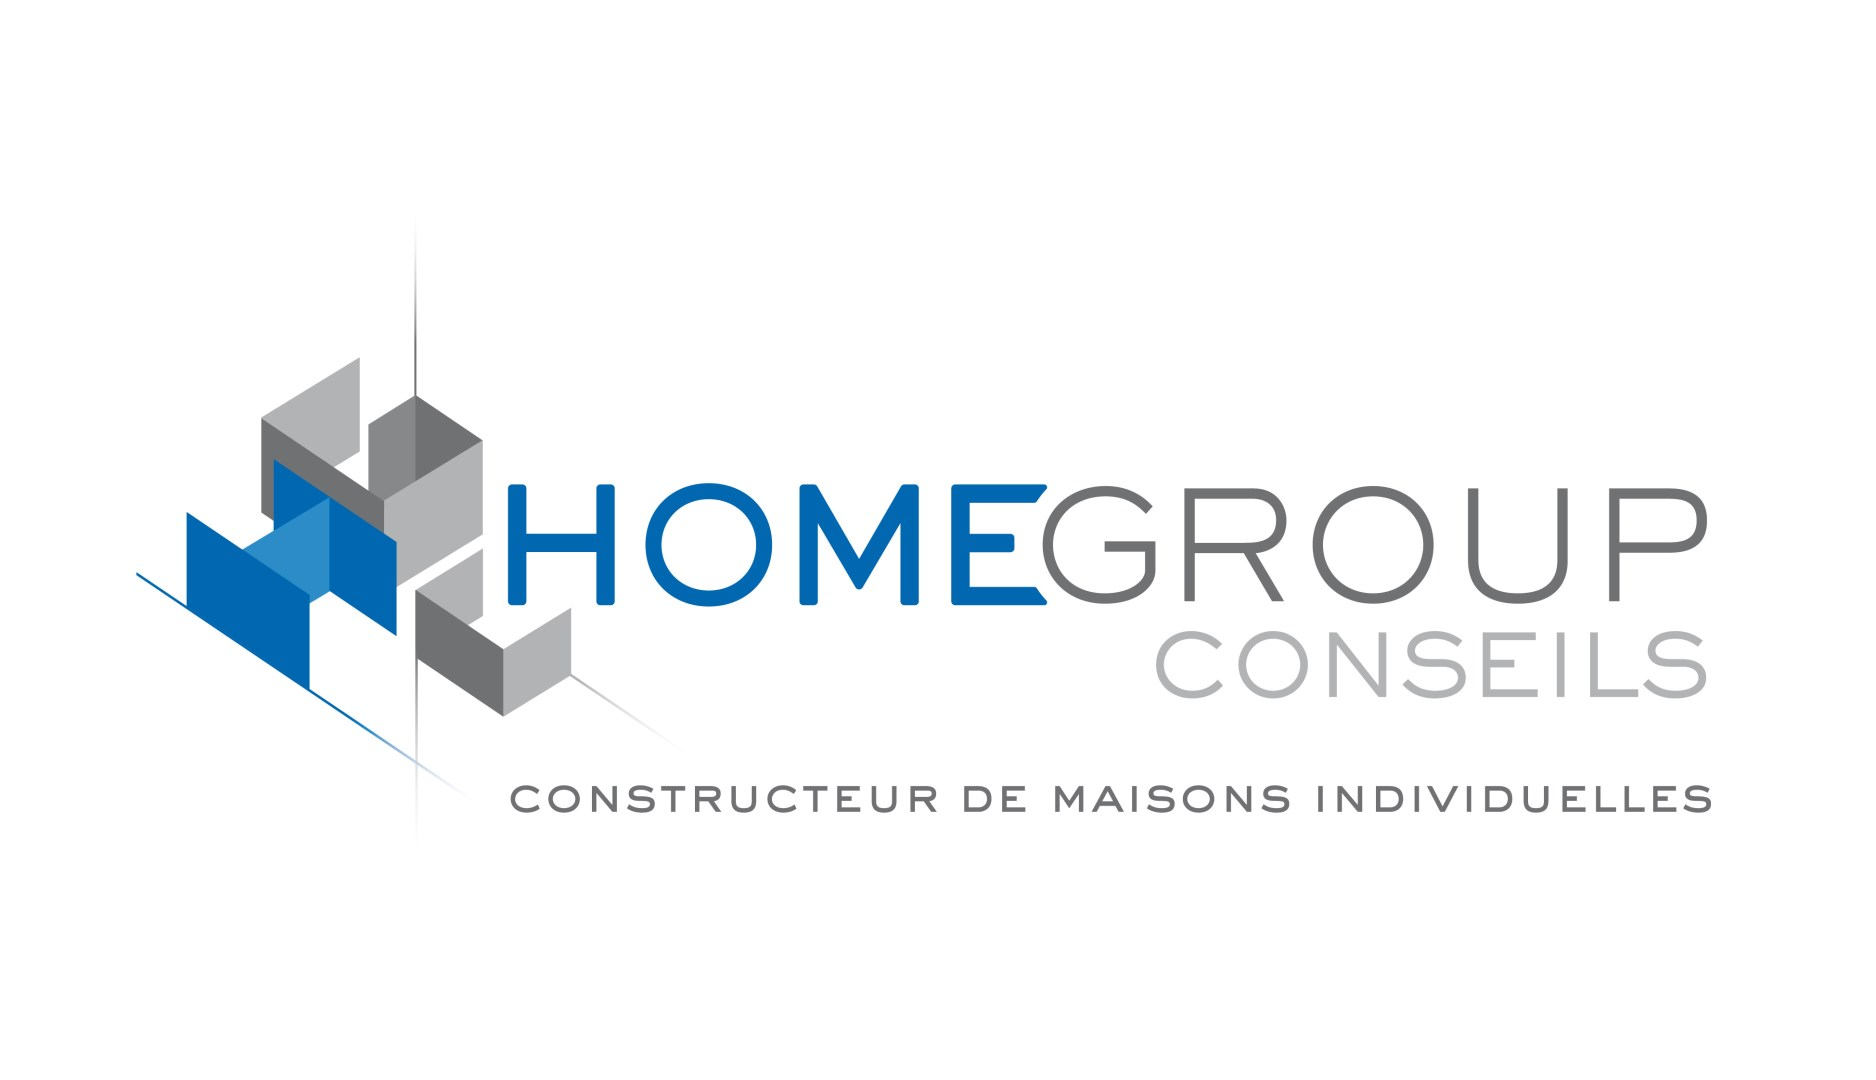 HOME GROUP CONSEILS